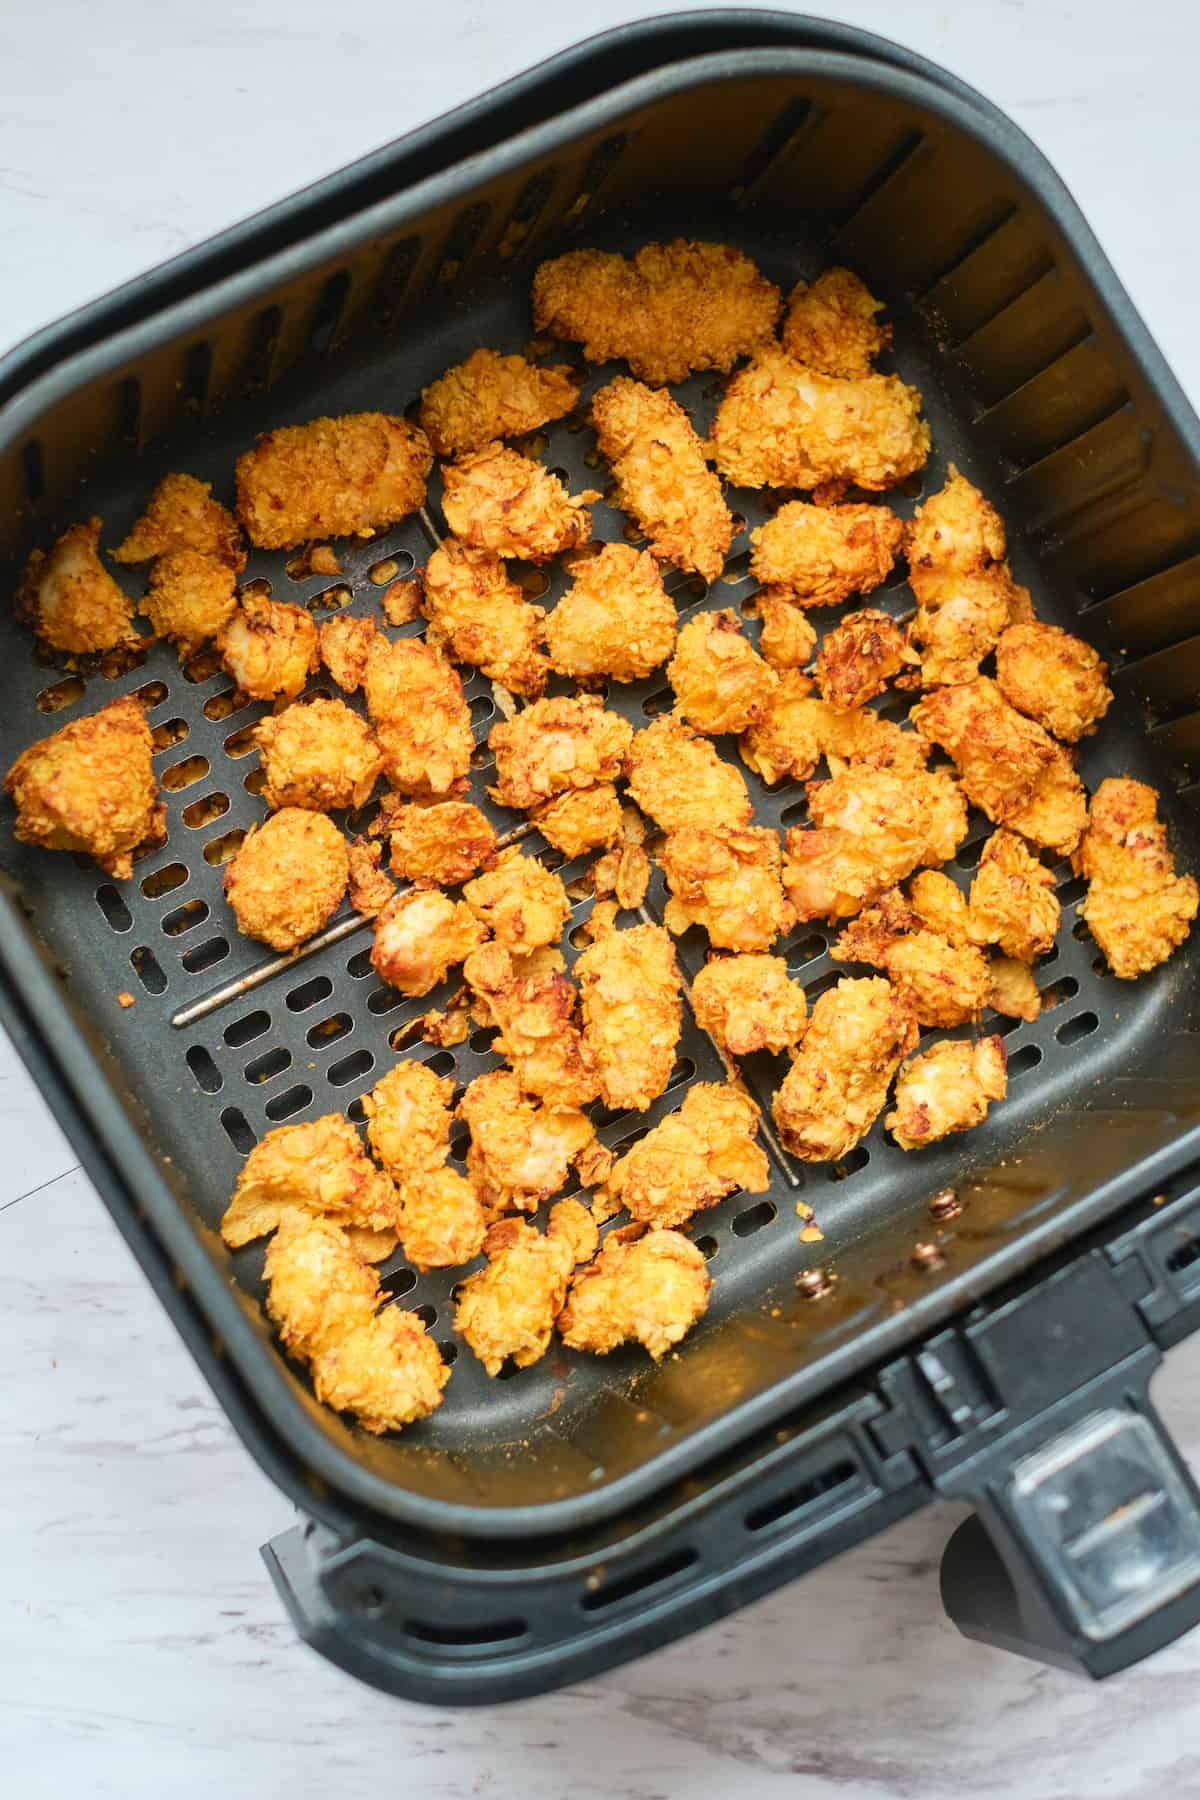 top down view of the cooked popcorn chicken inside the air fryer basket